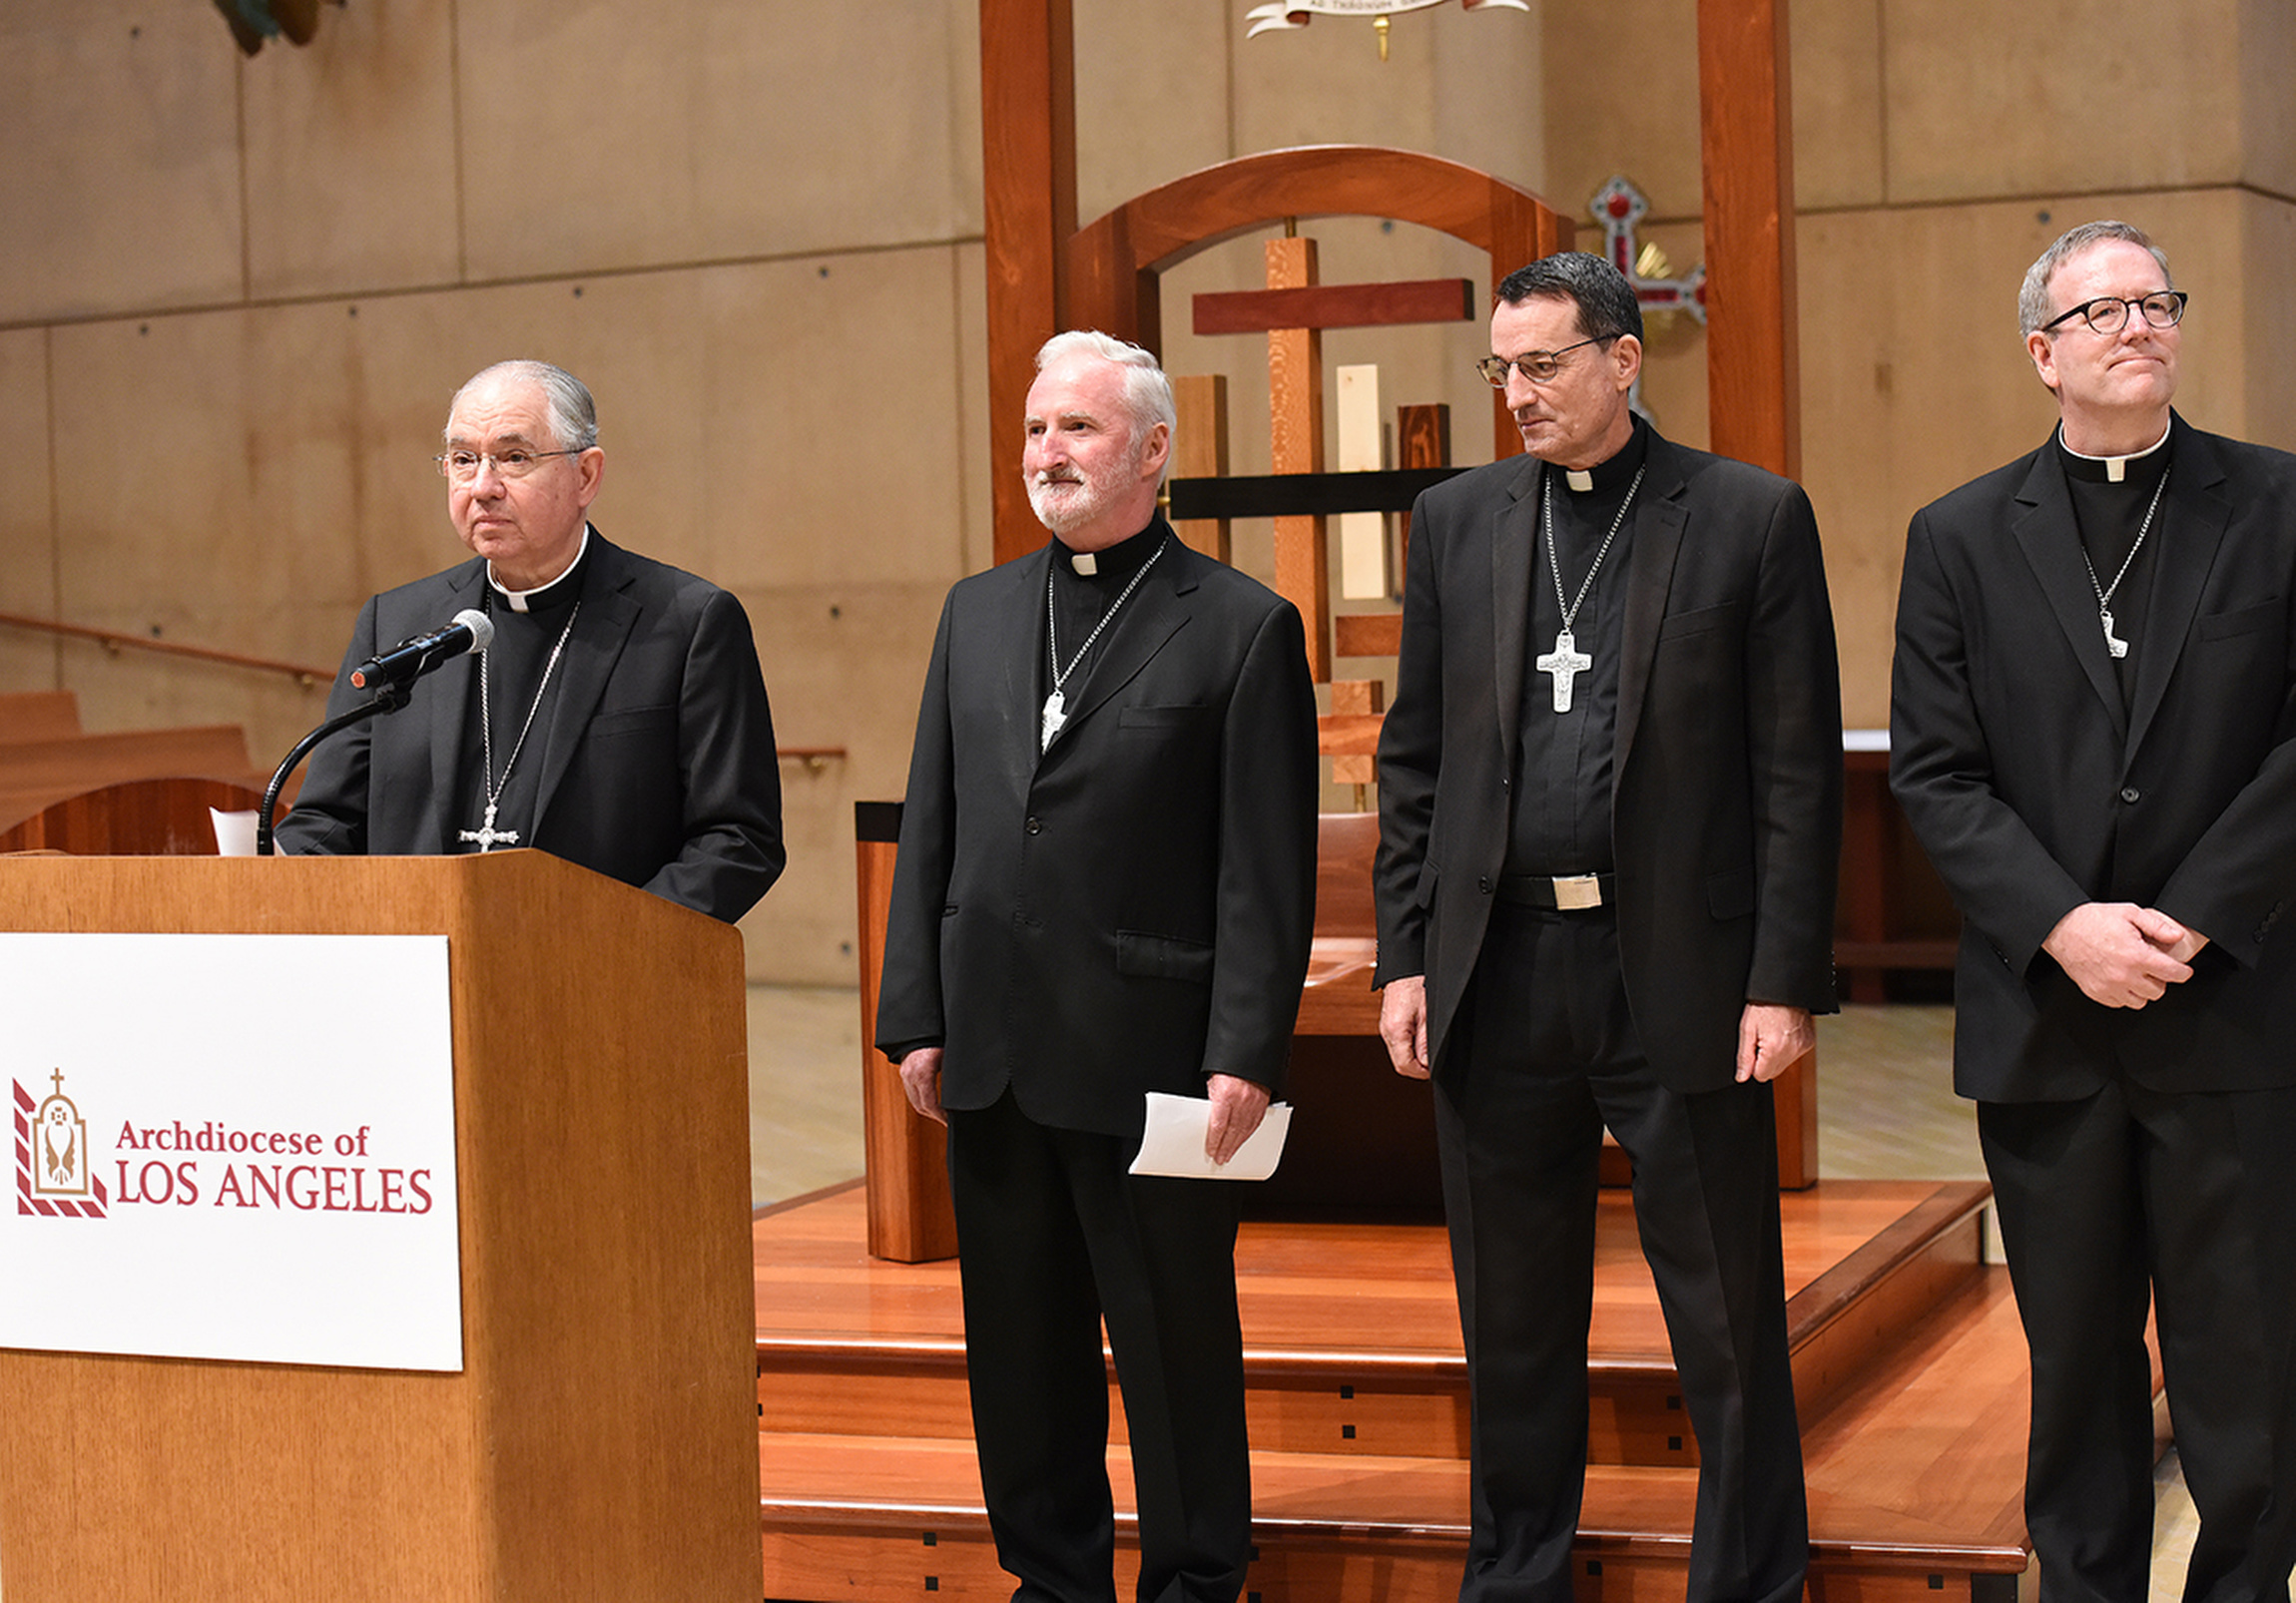 Los Angeles Archbishop Jose H. Gomez introduces Msgr. David G. O'Connell, Msgr. Joseph V. Brennan and Father Robert Barron July 21 at the Cathedral of Our Lady of the Angels in Los Angeles. The three priests will serve as auxiliary bishops of the largest archdiocese in the United States in terms of Catholic population. (CNS photo/Tamara Tirado, The Tidings?) See BISHOPS-LA (UPDATED) July 21, 2015.